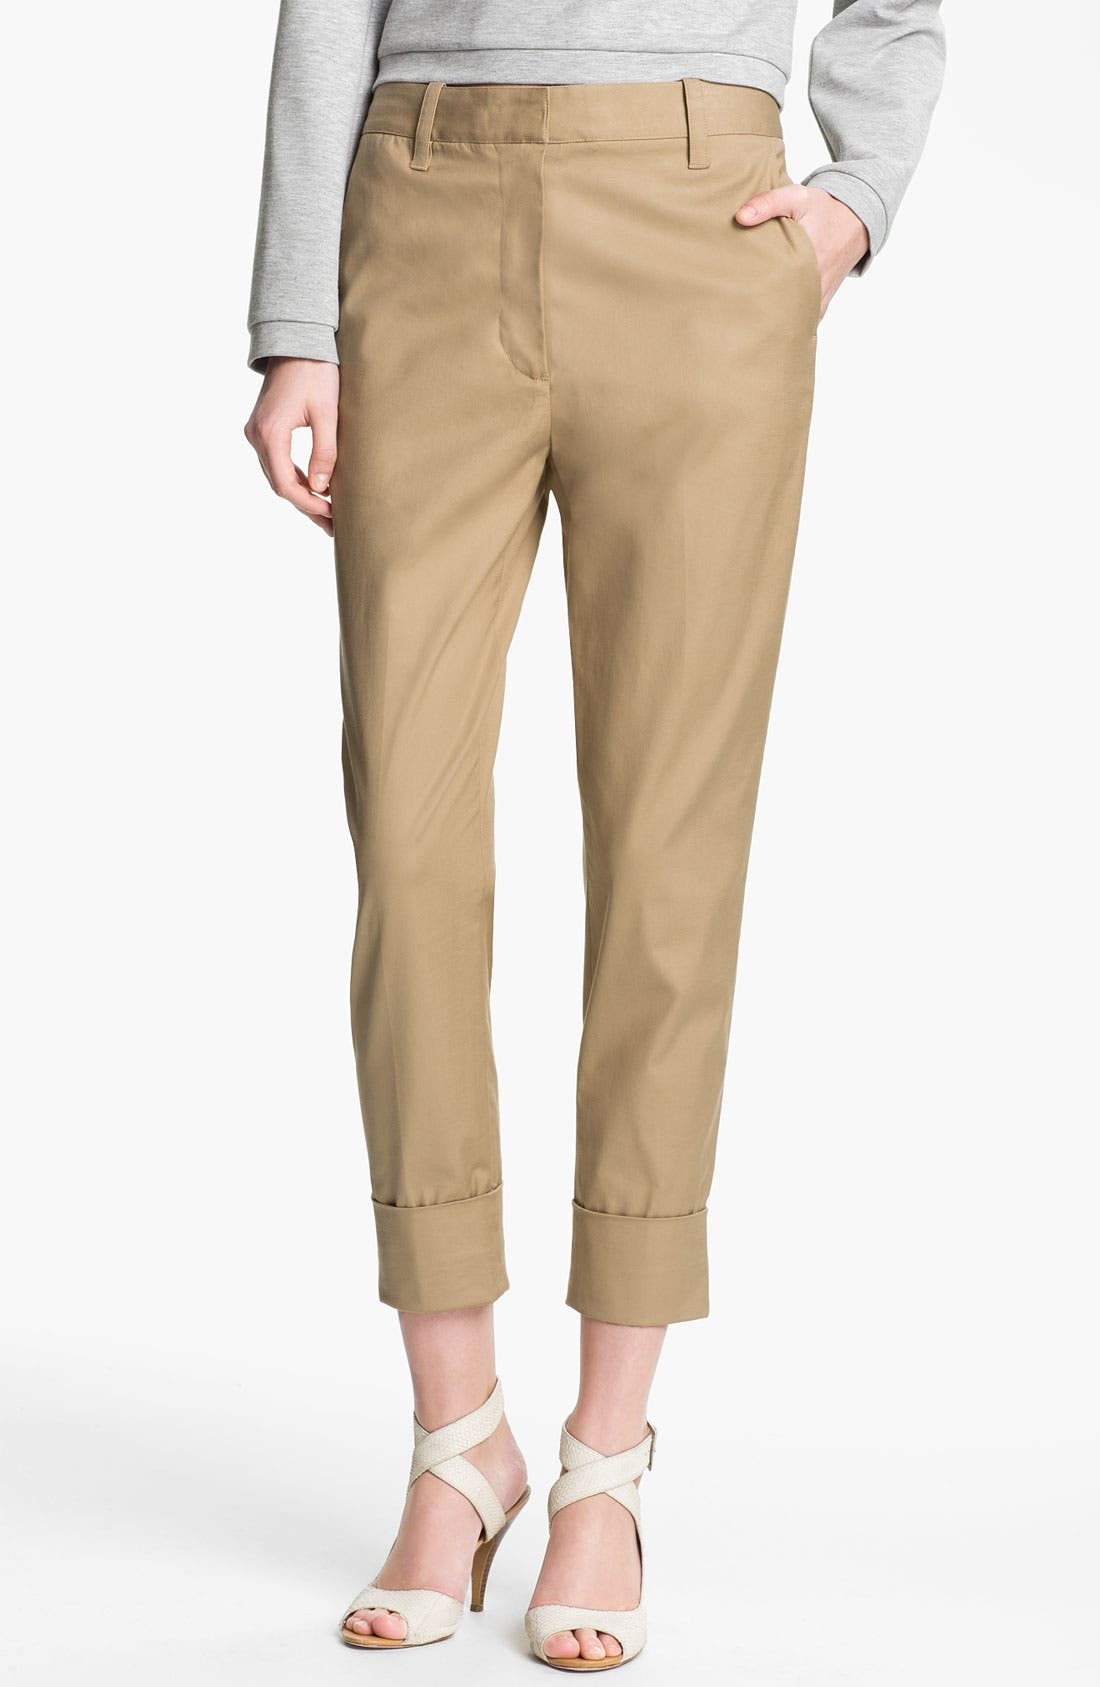 Main Image - 3.1 Phillip Lim Tapered Flat Front Trousers